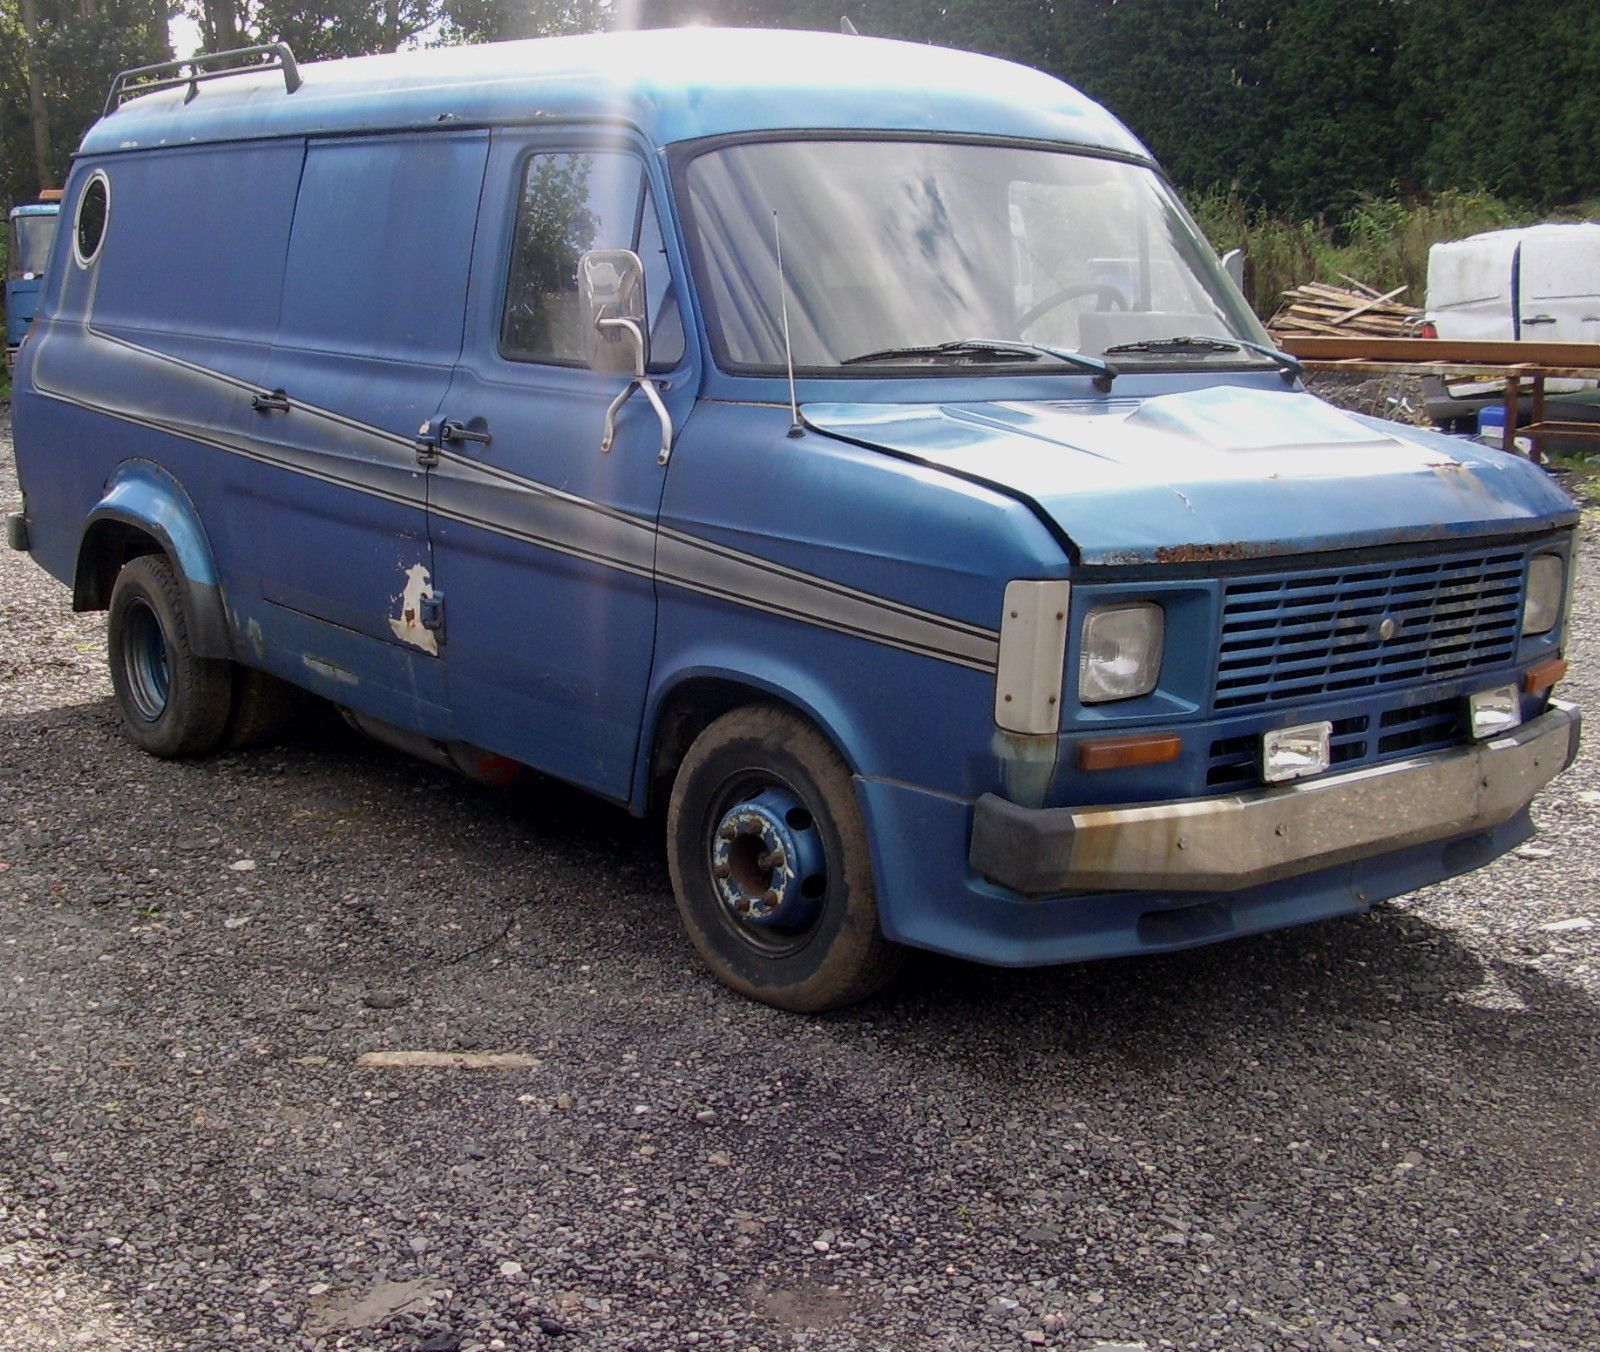 save up to 80% new cheap size 7 mk2 ford transit van 80,s custom van left hand drive import ...